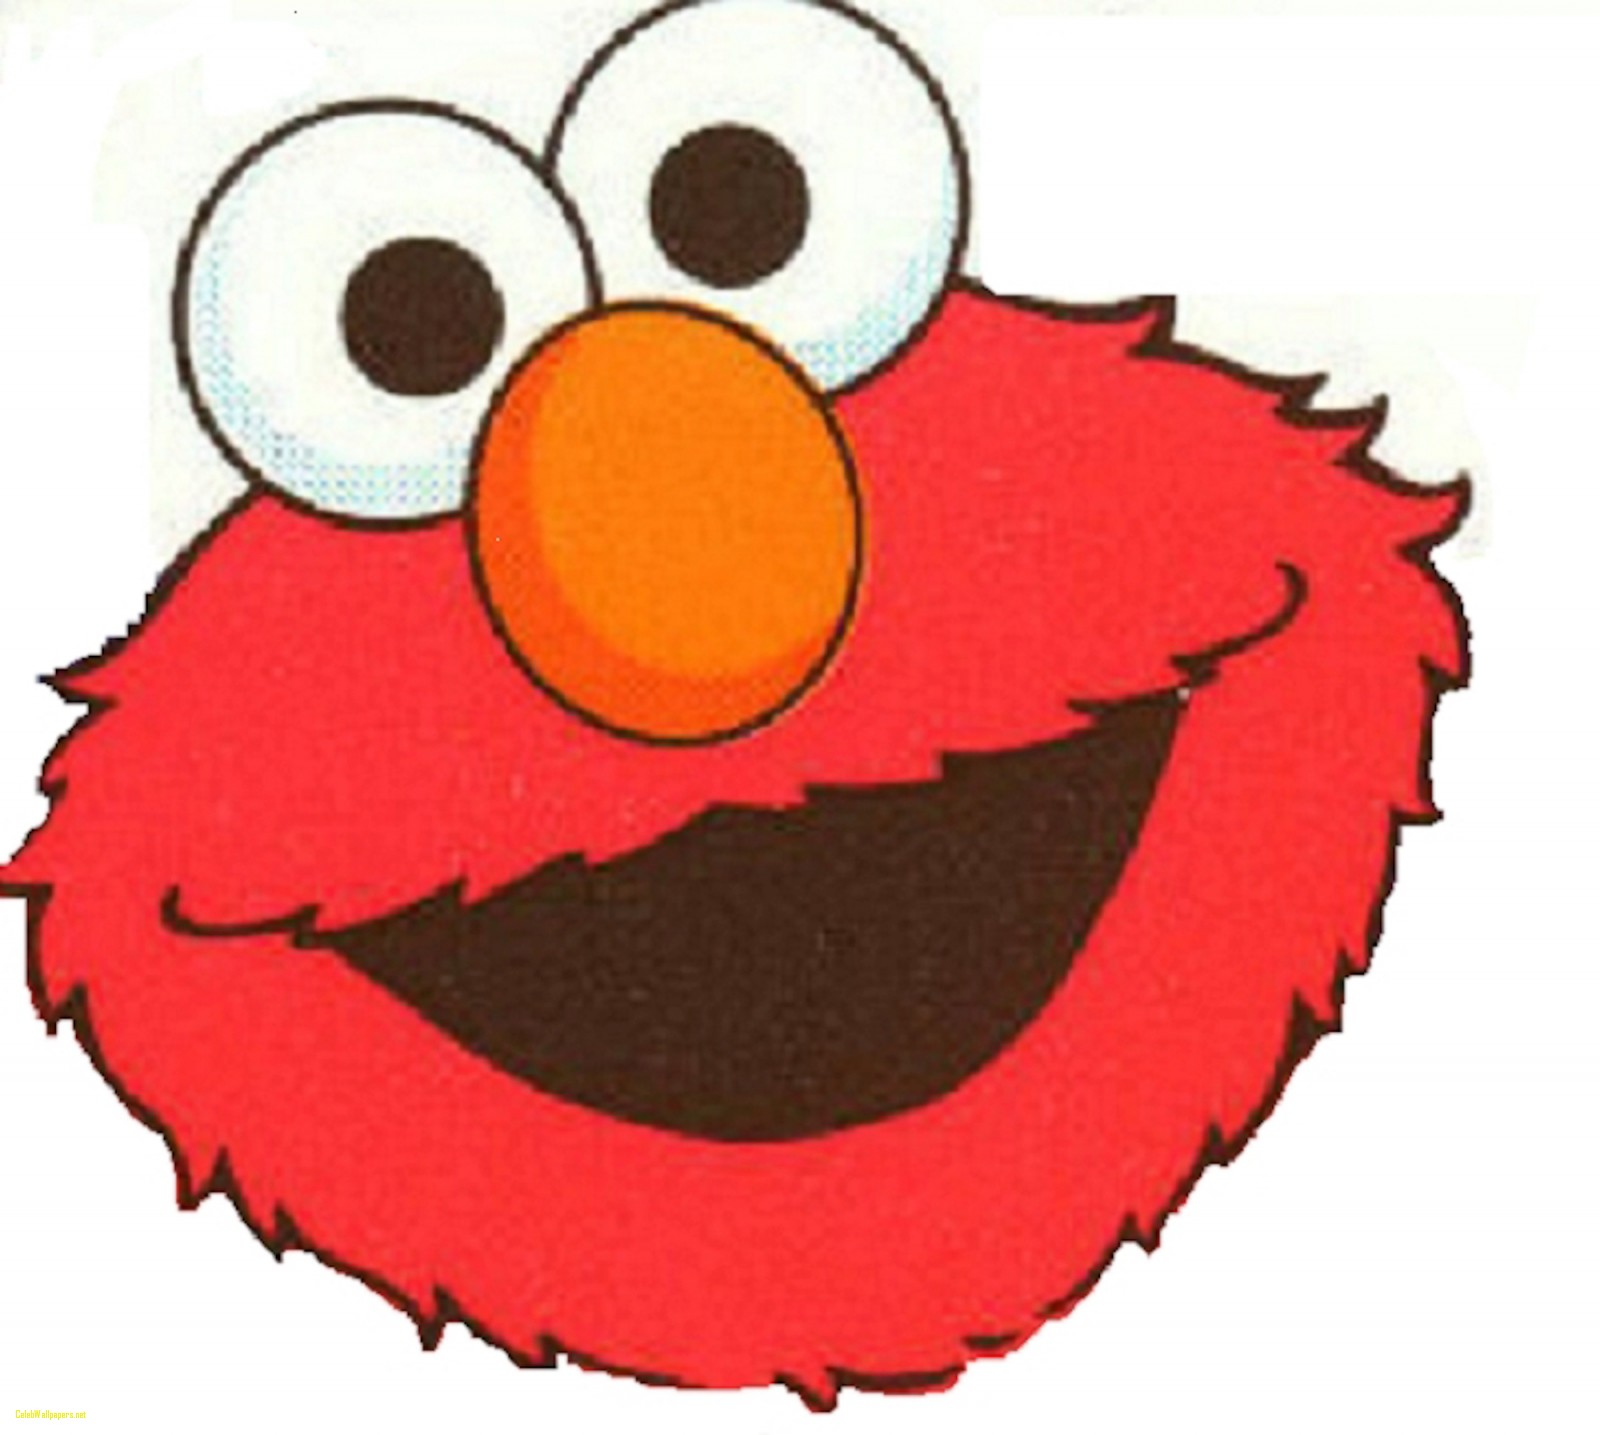 1600x1435 Elmo Wallpaper Elmo Wallpaper Clip Art Library Celebswallpaper